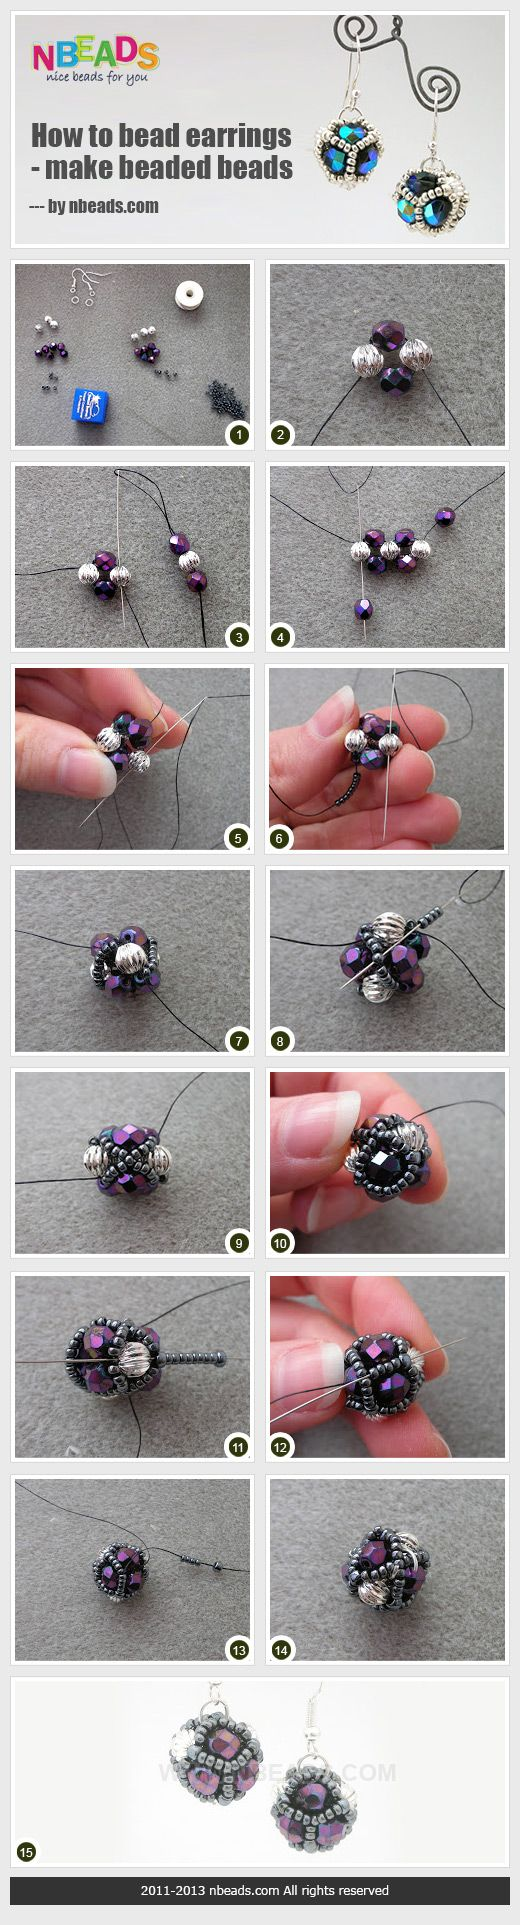 how to bead earrings - make beaded beads